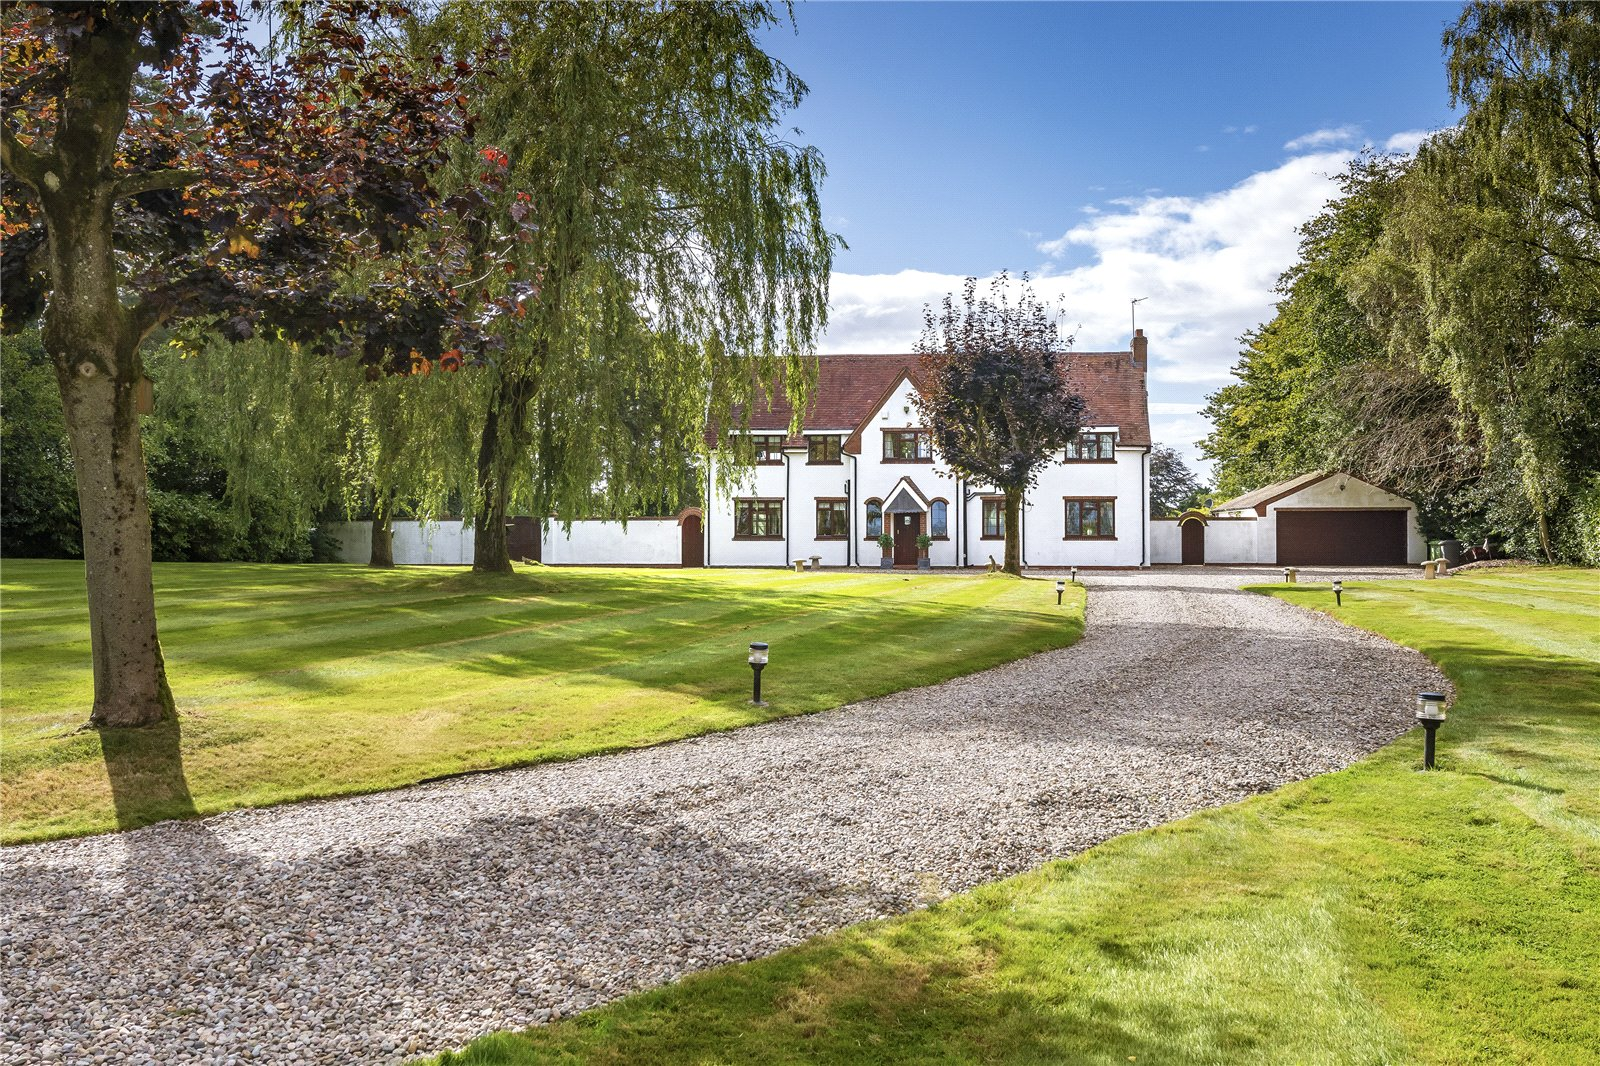 Abbots Lea, Trimpley, Bewdley, Worcestershire, DY12